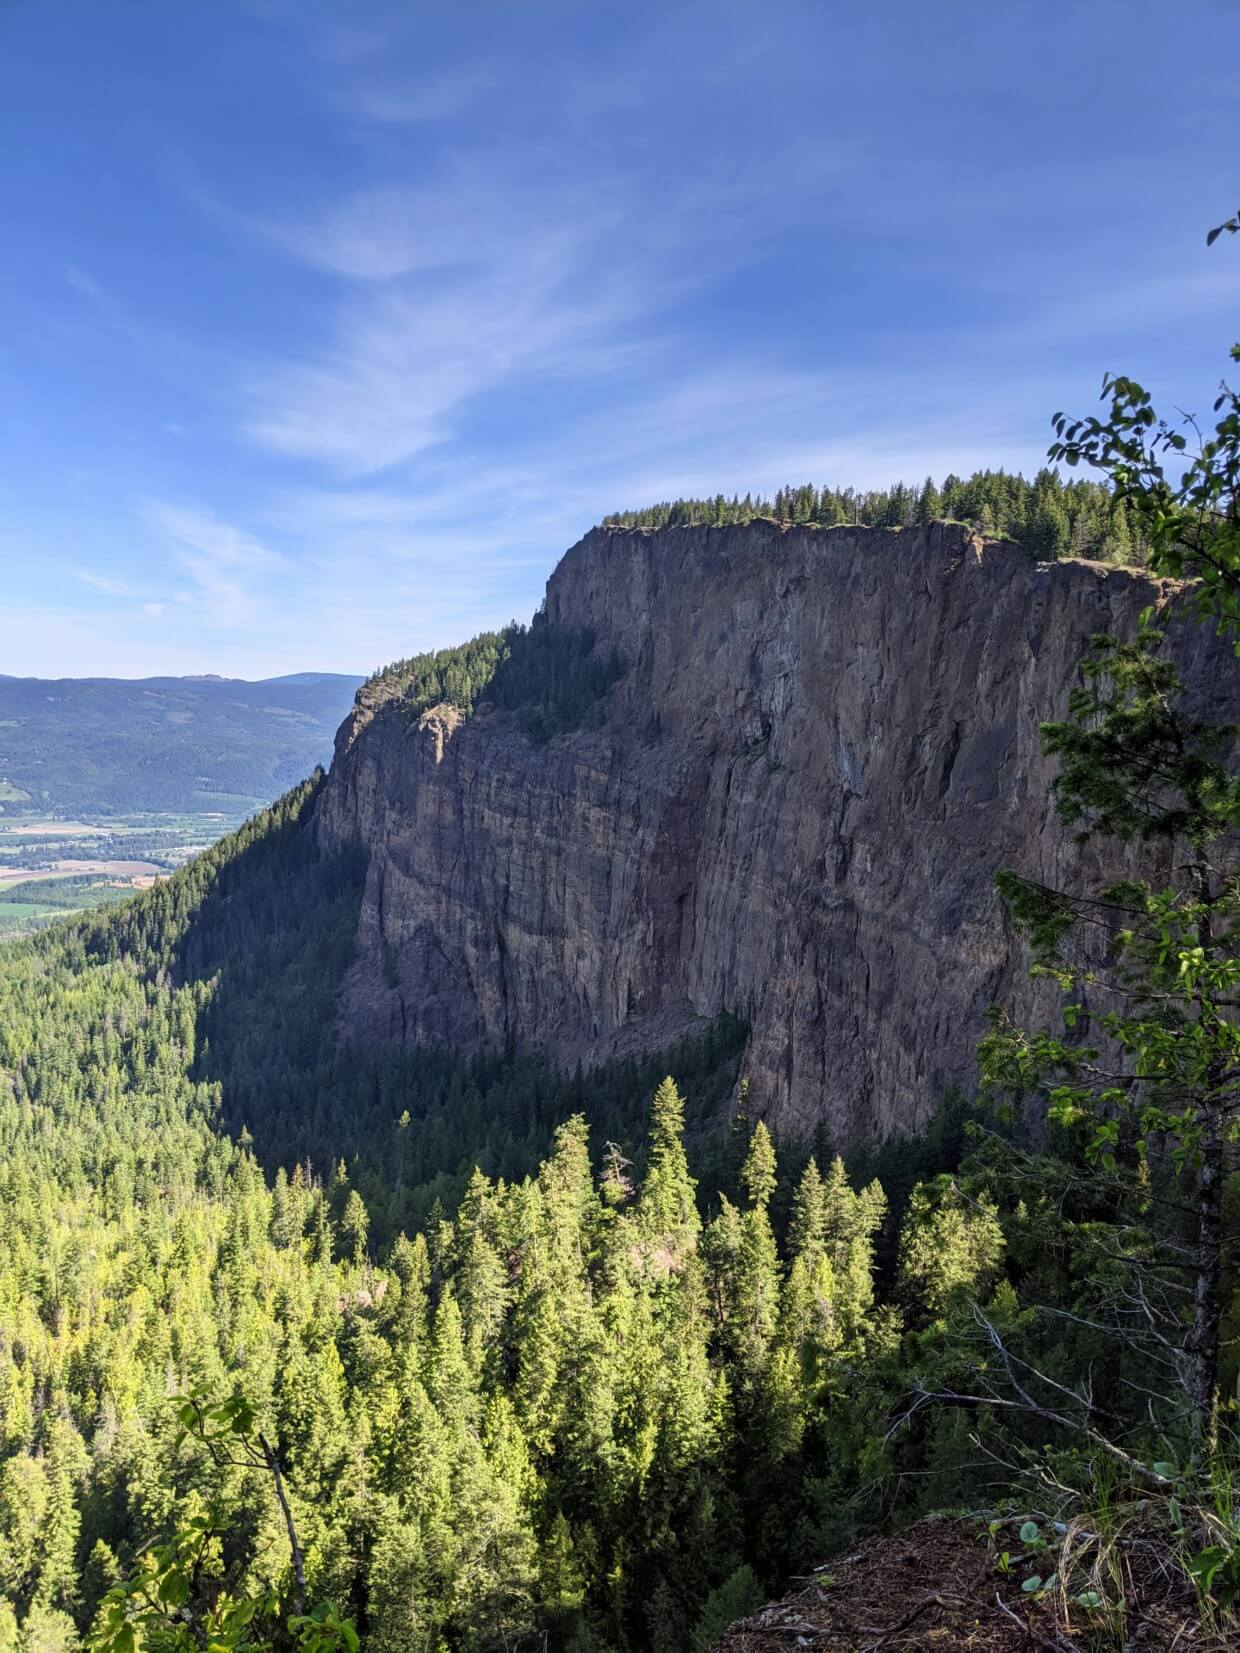 Side view of huge 1200m cliffs rising out of forest, with rolling farmland in background